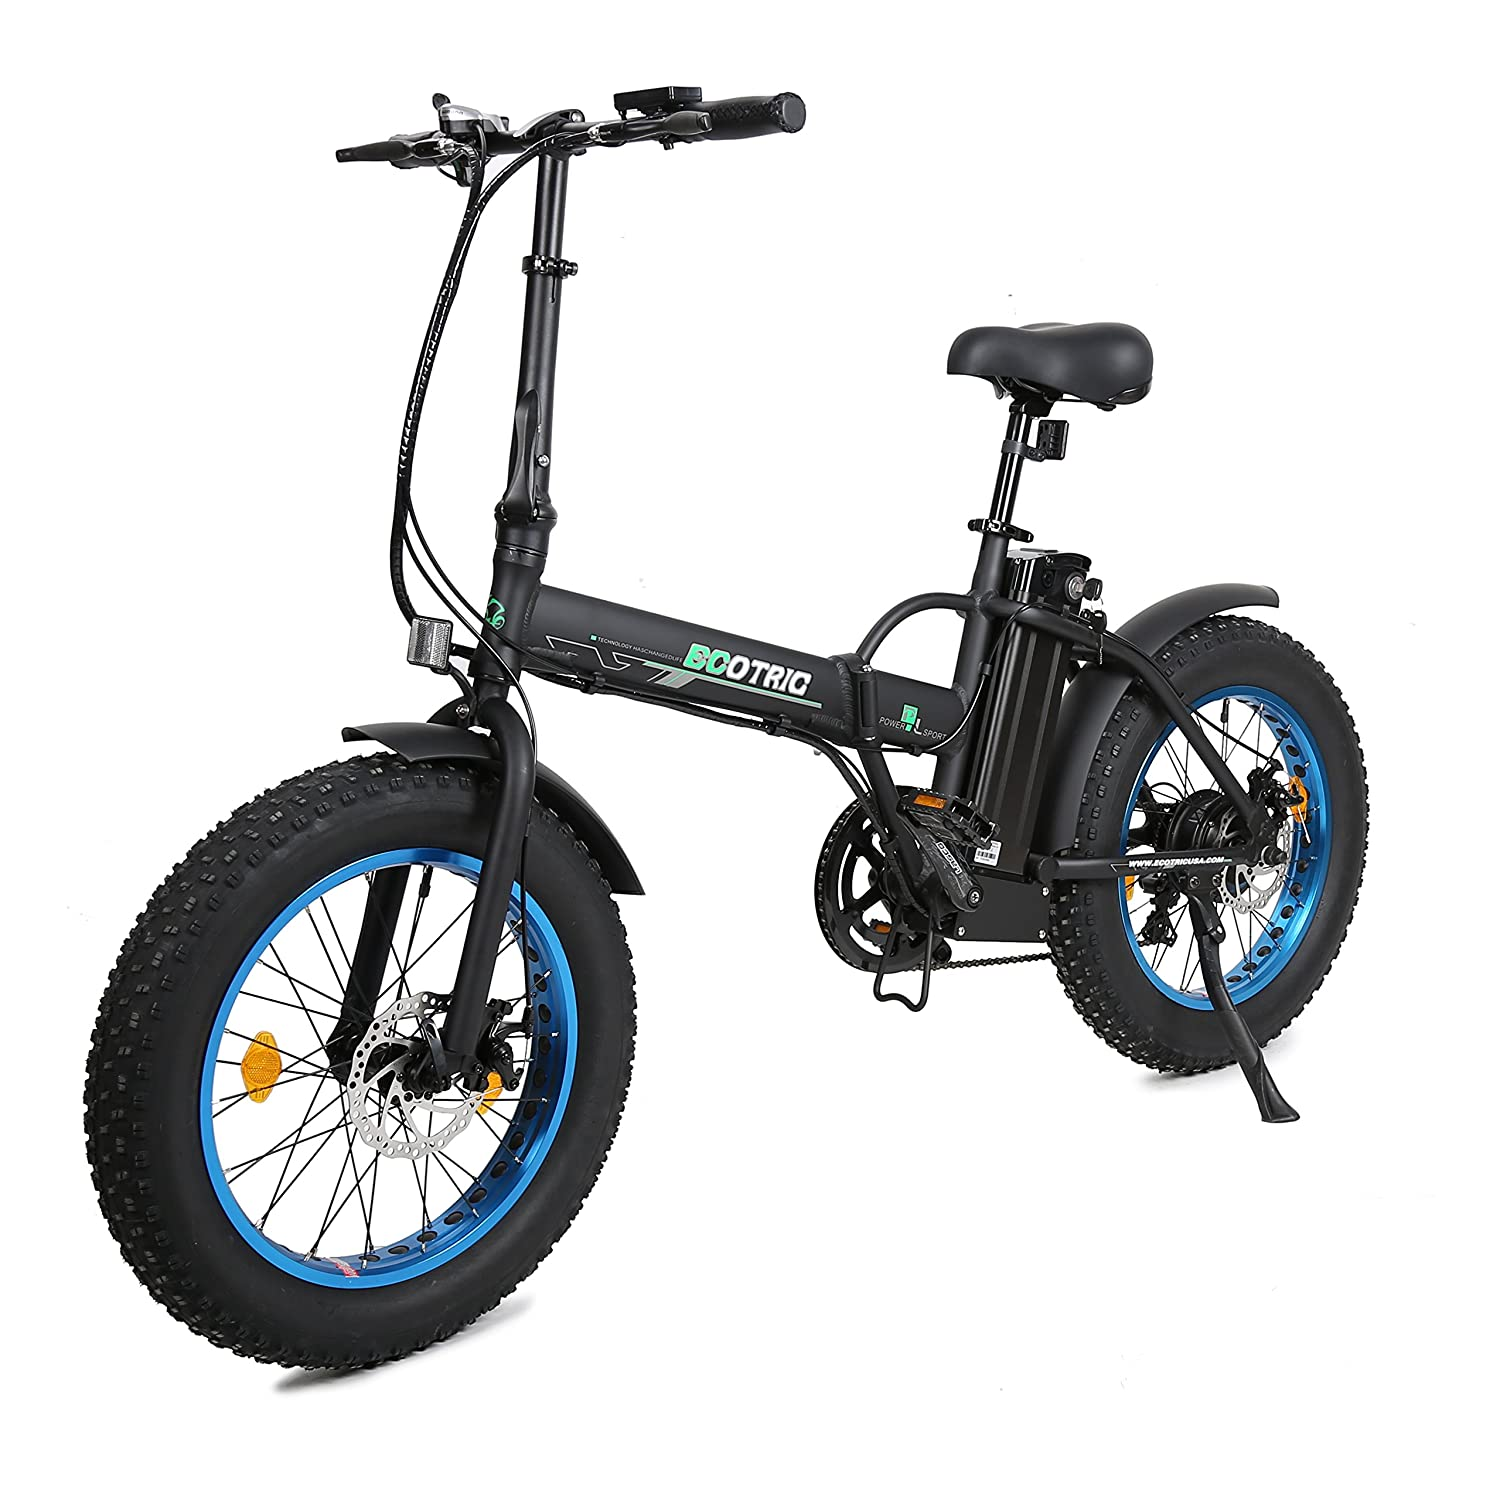 Electric Road Bike Reviews Prices Specs Videos Photos >> Ecotric 20 New Fat Tire Folding Electric Bike Beach Snow Bicycle Ebike 500w Electric Moped Electric Mountain Bicycles